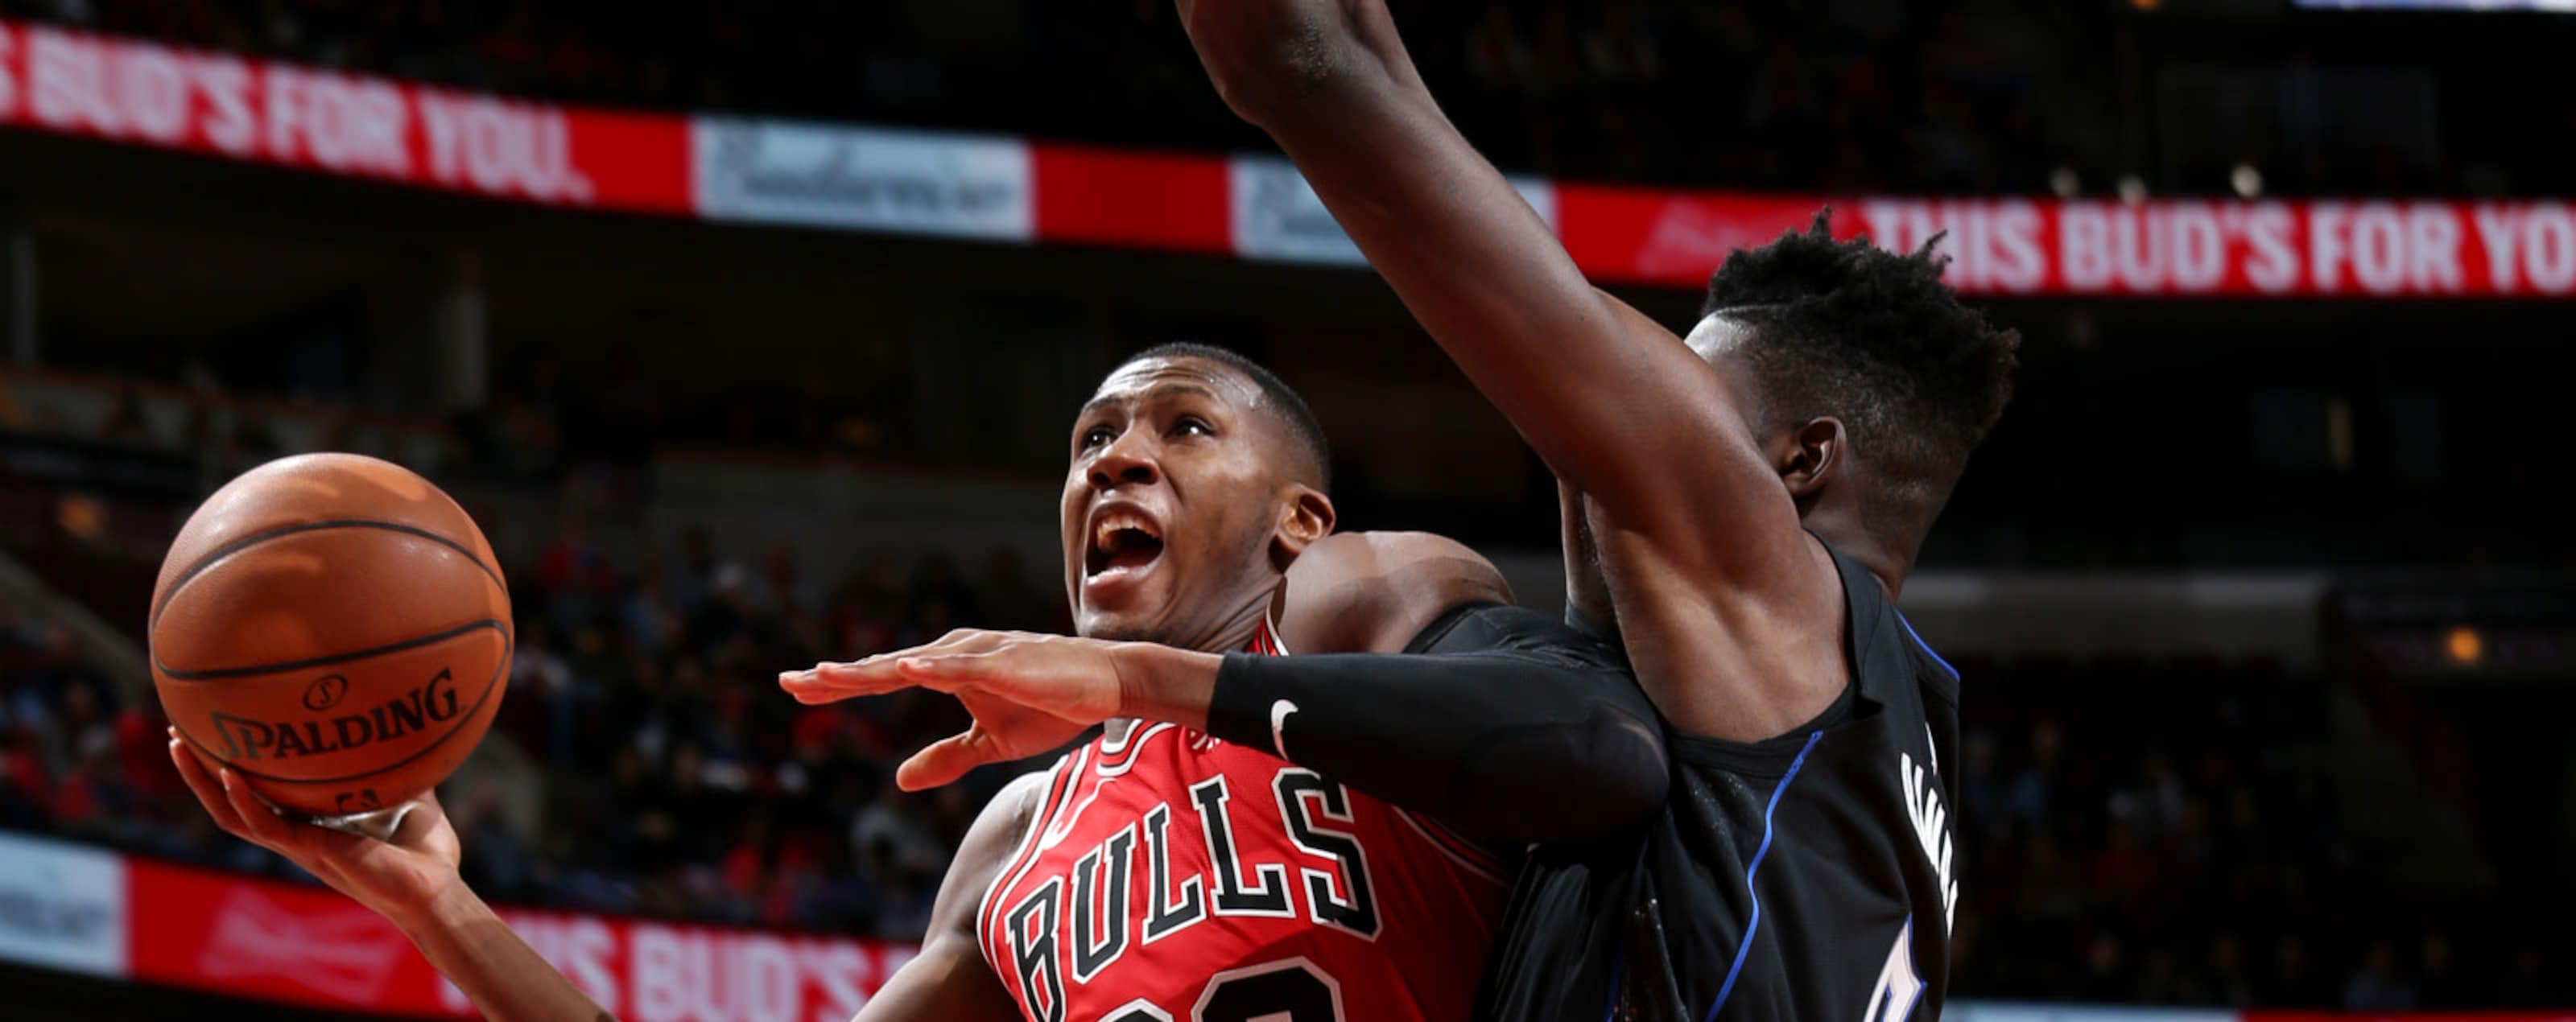 Kris Dunn #32 of the Chicago Bulls goes to the basket against the Orlando Magic on December 21, 2018 at the United Center in Chicago, Illinois.